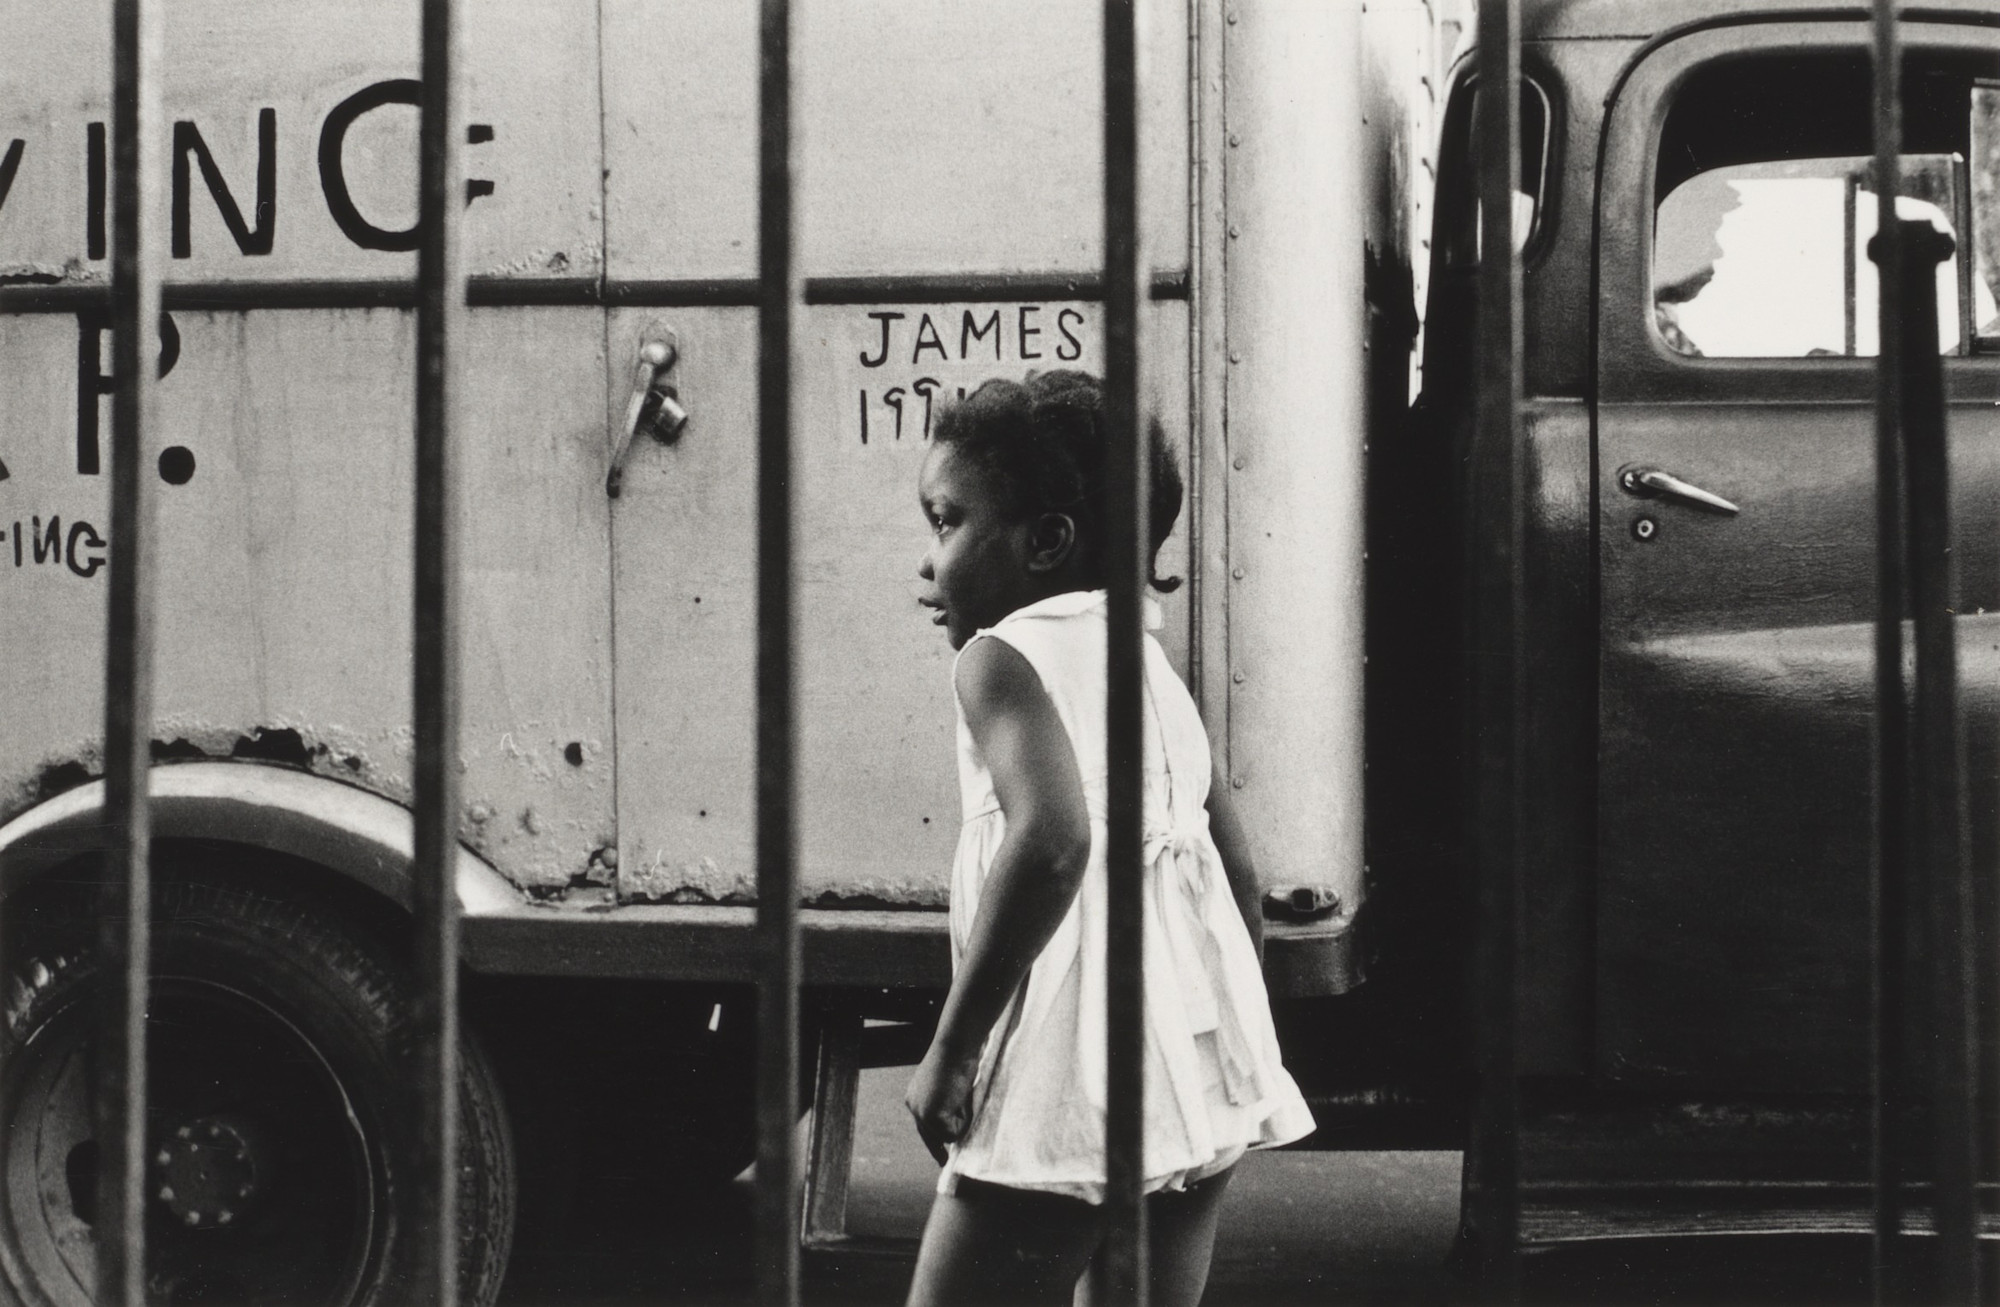 Shawn W. Walker. Young Girl in Front of Truck, 120th Street, Harlem, NY. 1962